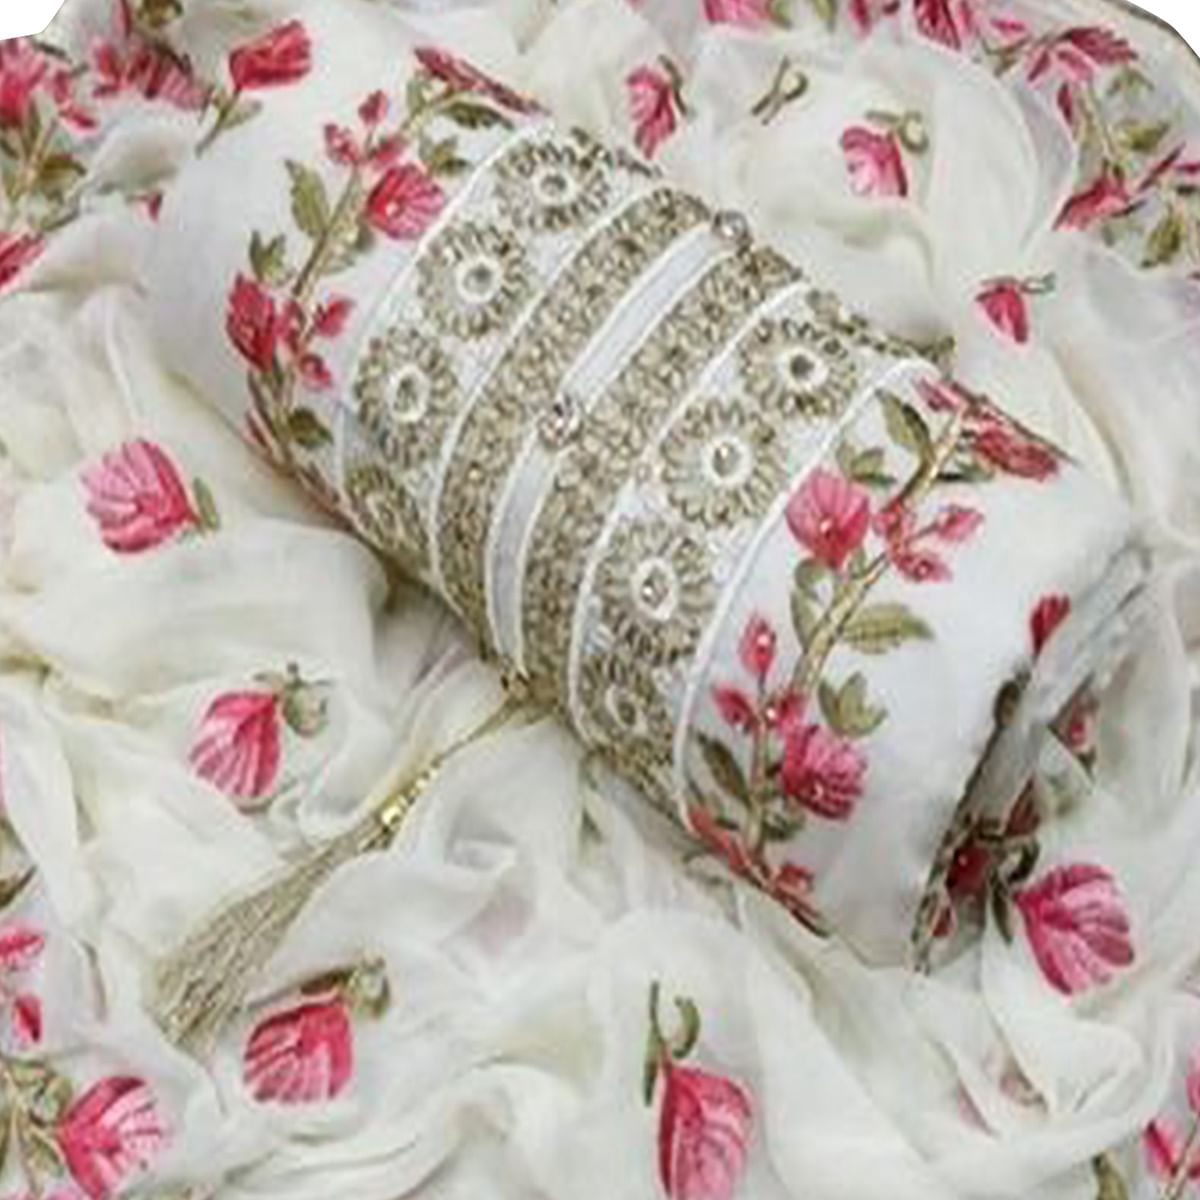 Appealing White-Pink Colored Partywear Floral Embroidered Modal Dress Material